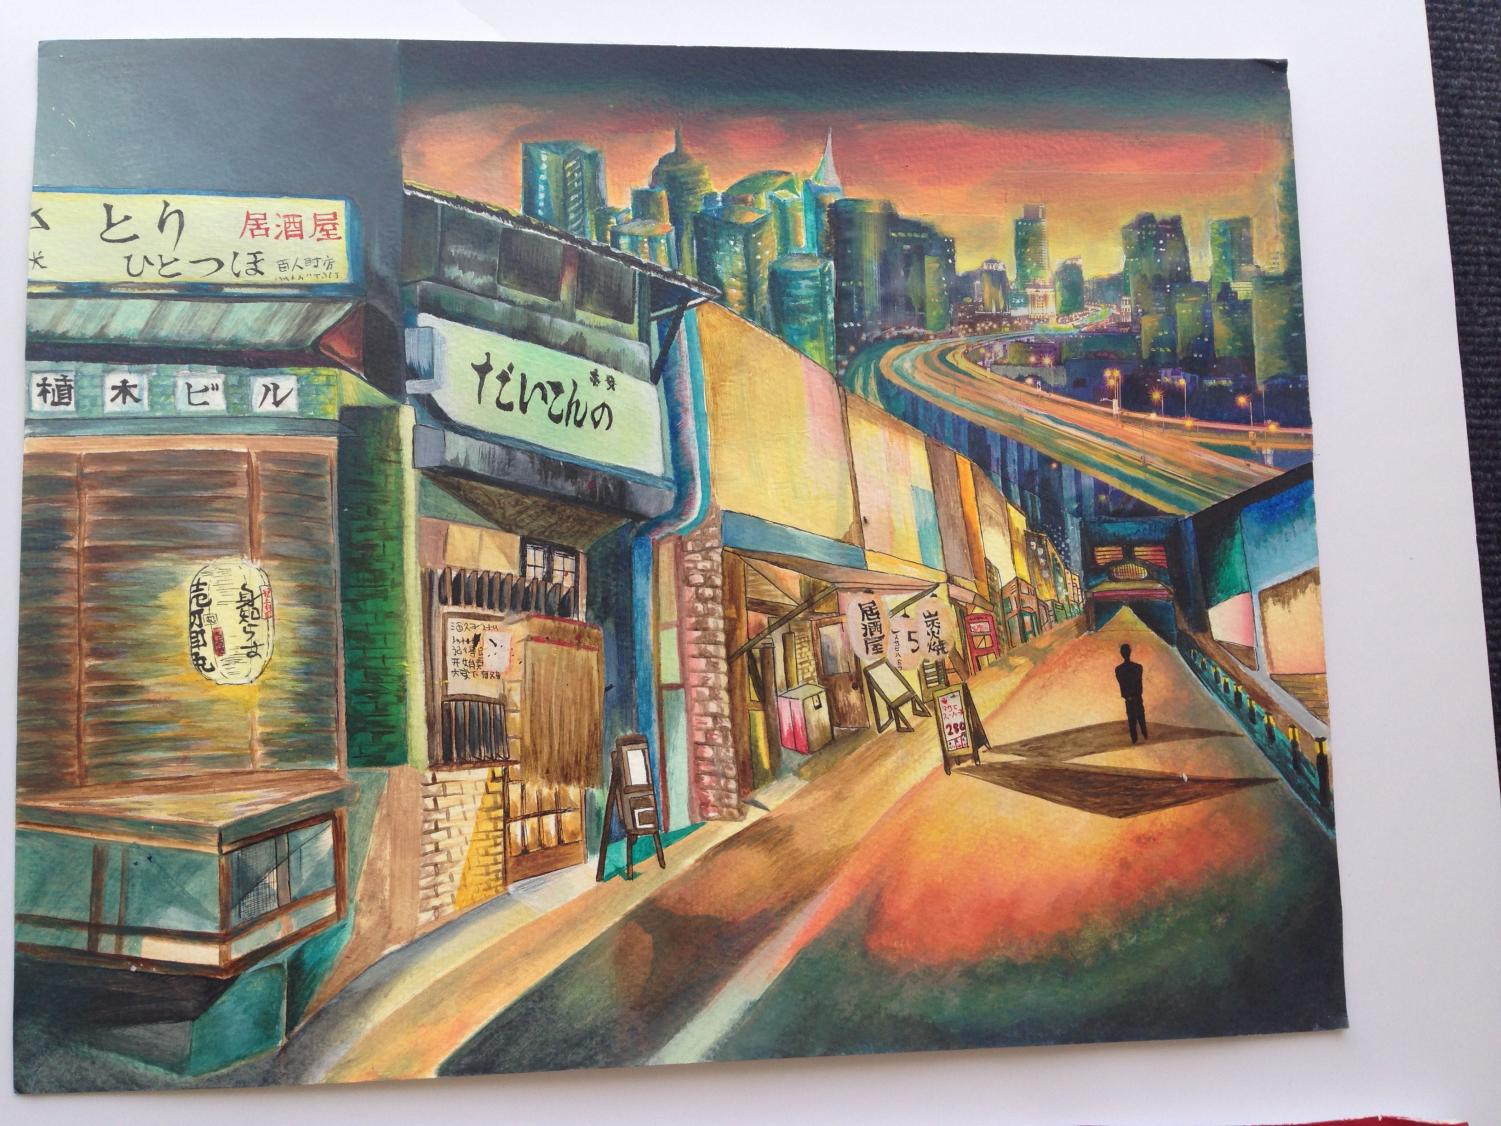 An+intricate+piece+depicting+a+side-street+in+Japan+at+sunset.